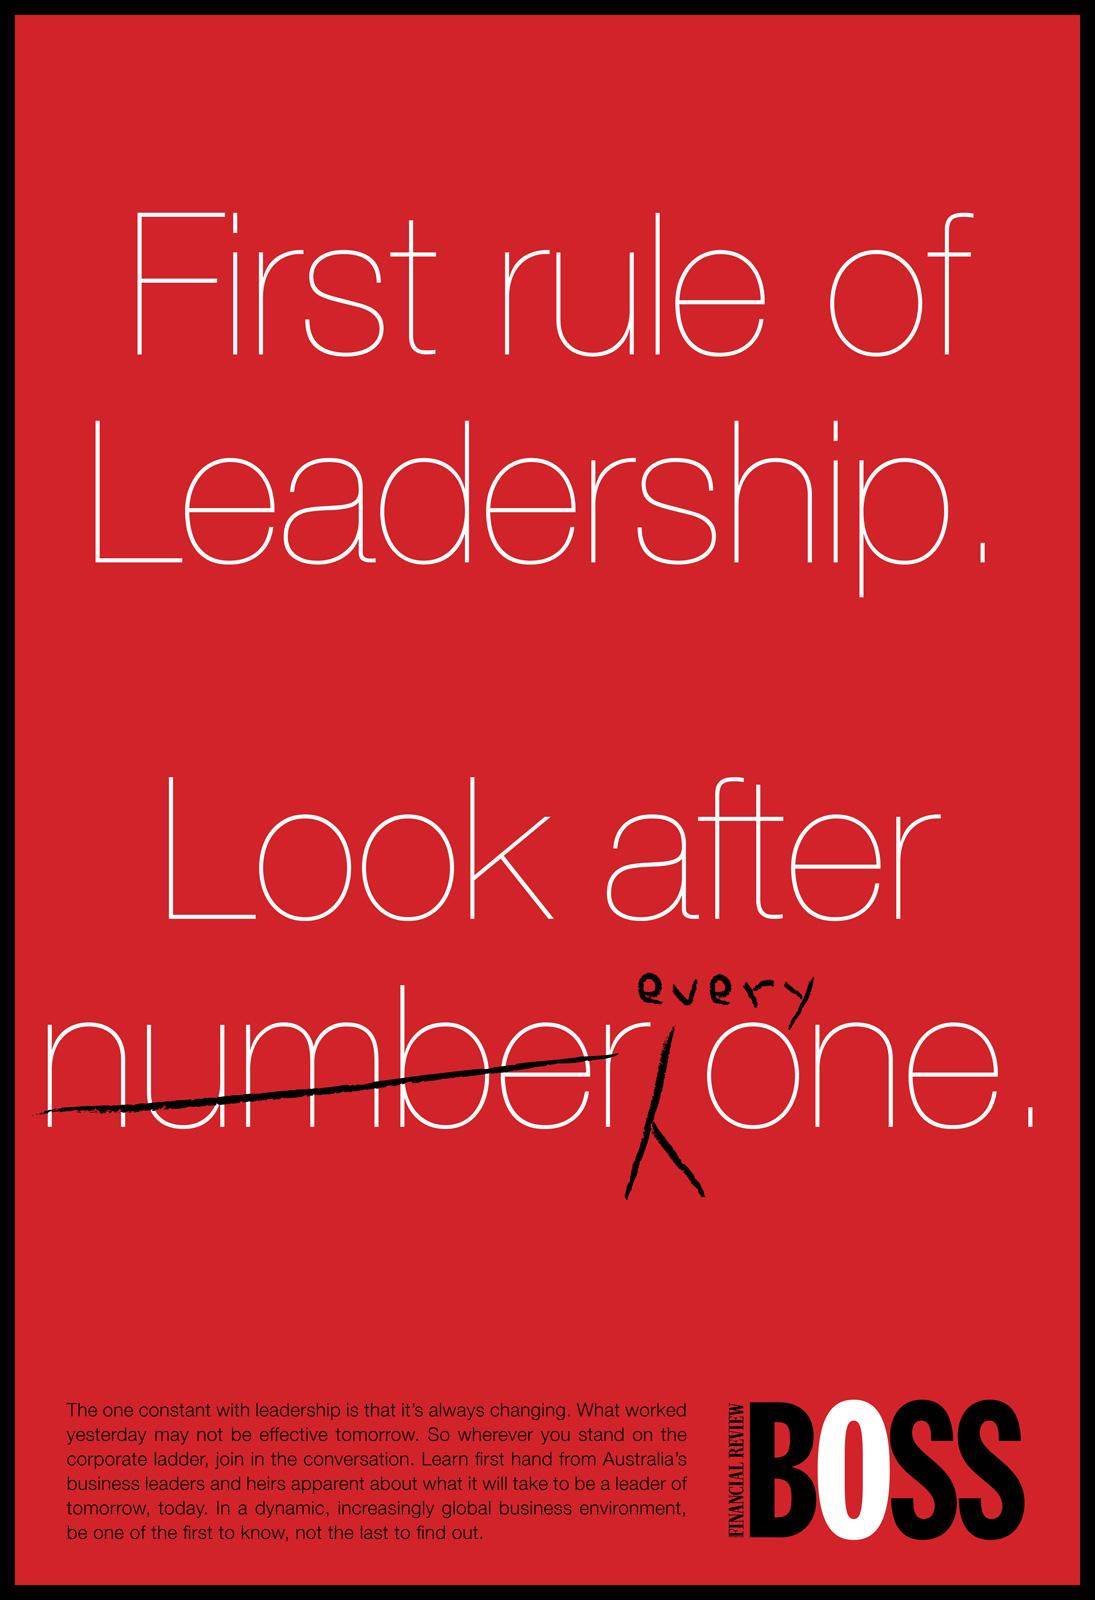 BOSS Financial Review Print Ad -  First rule of Leadership